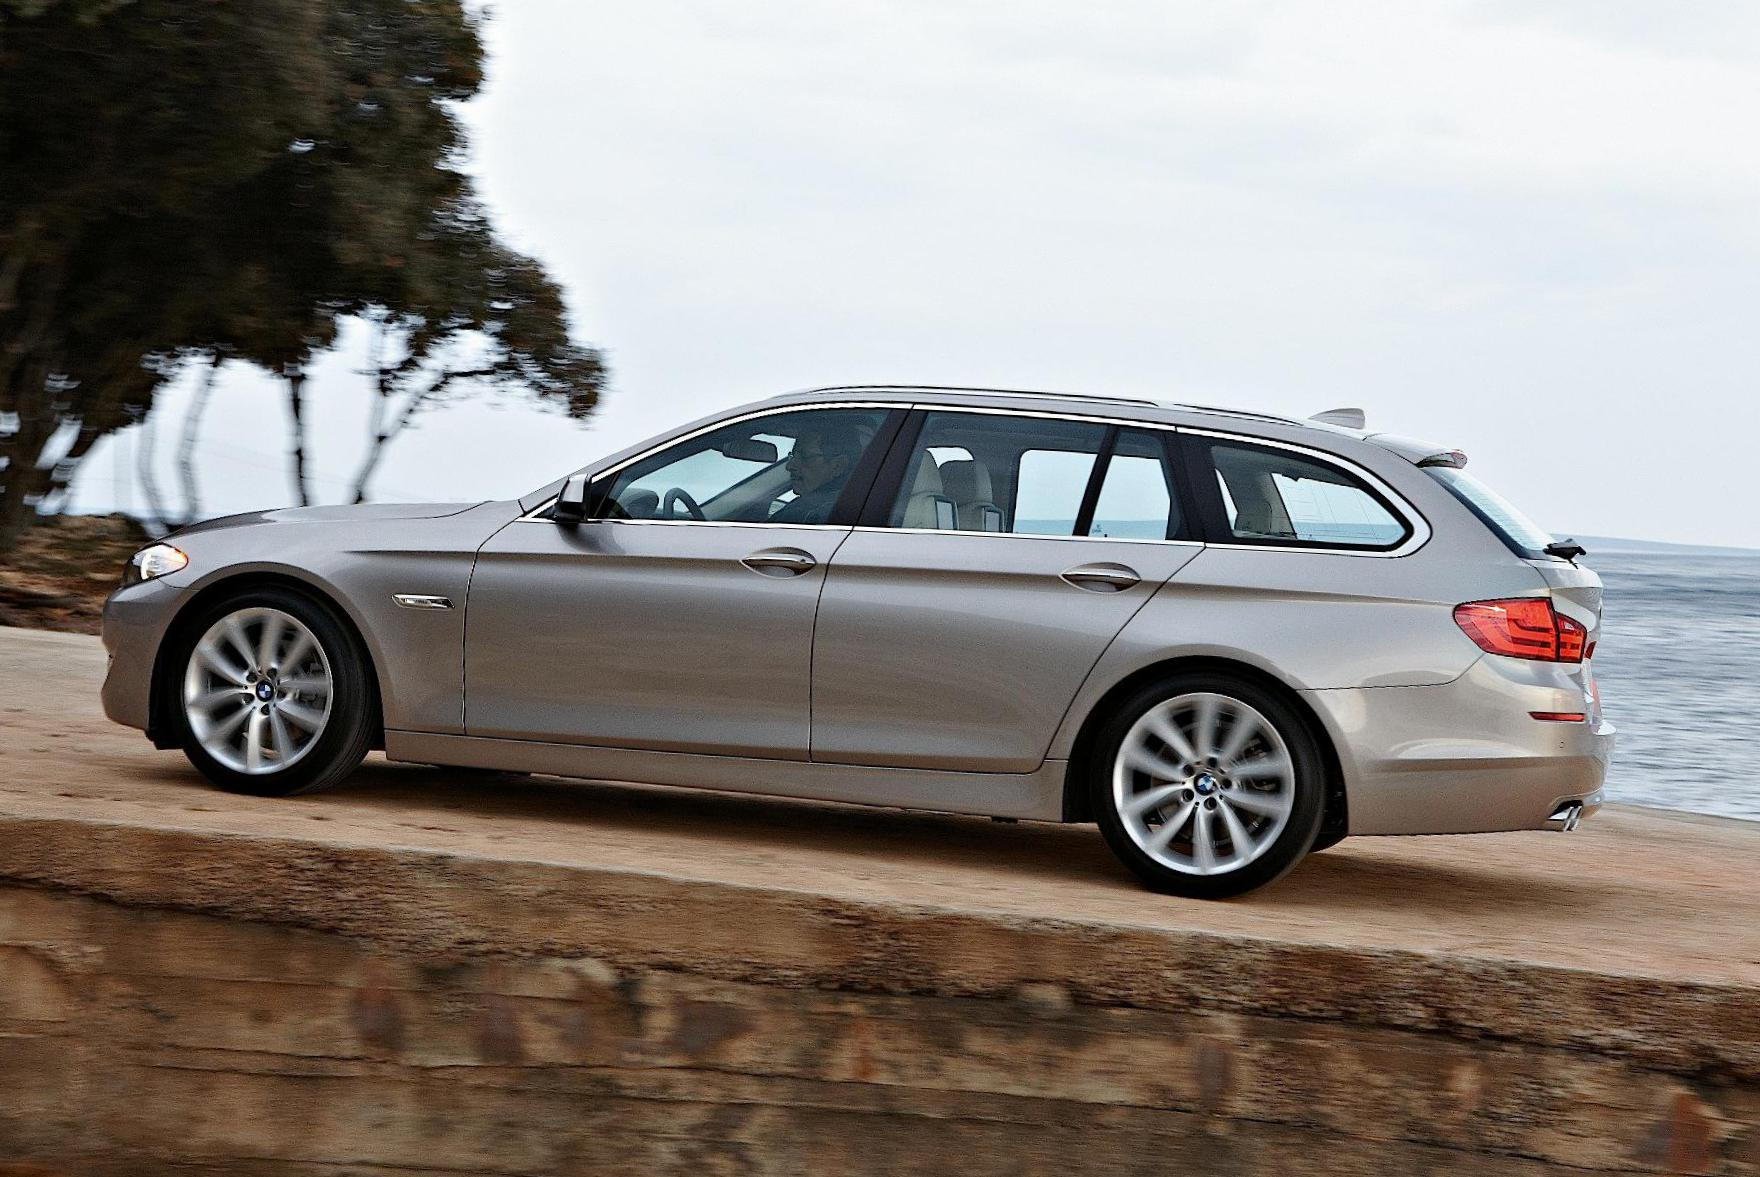 BMW 5 Series Touring F11 s and Specs BMW 5 Series